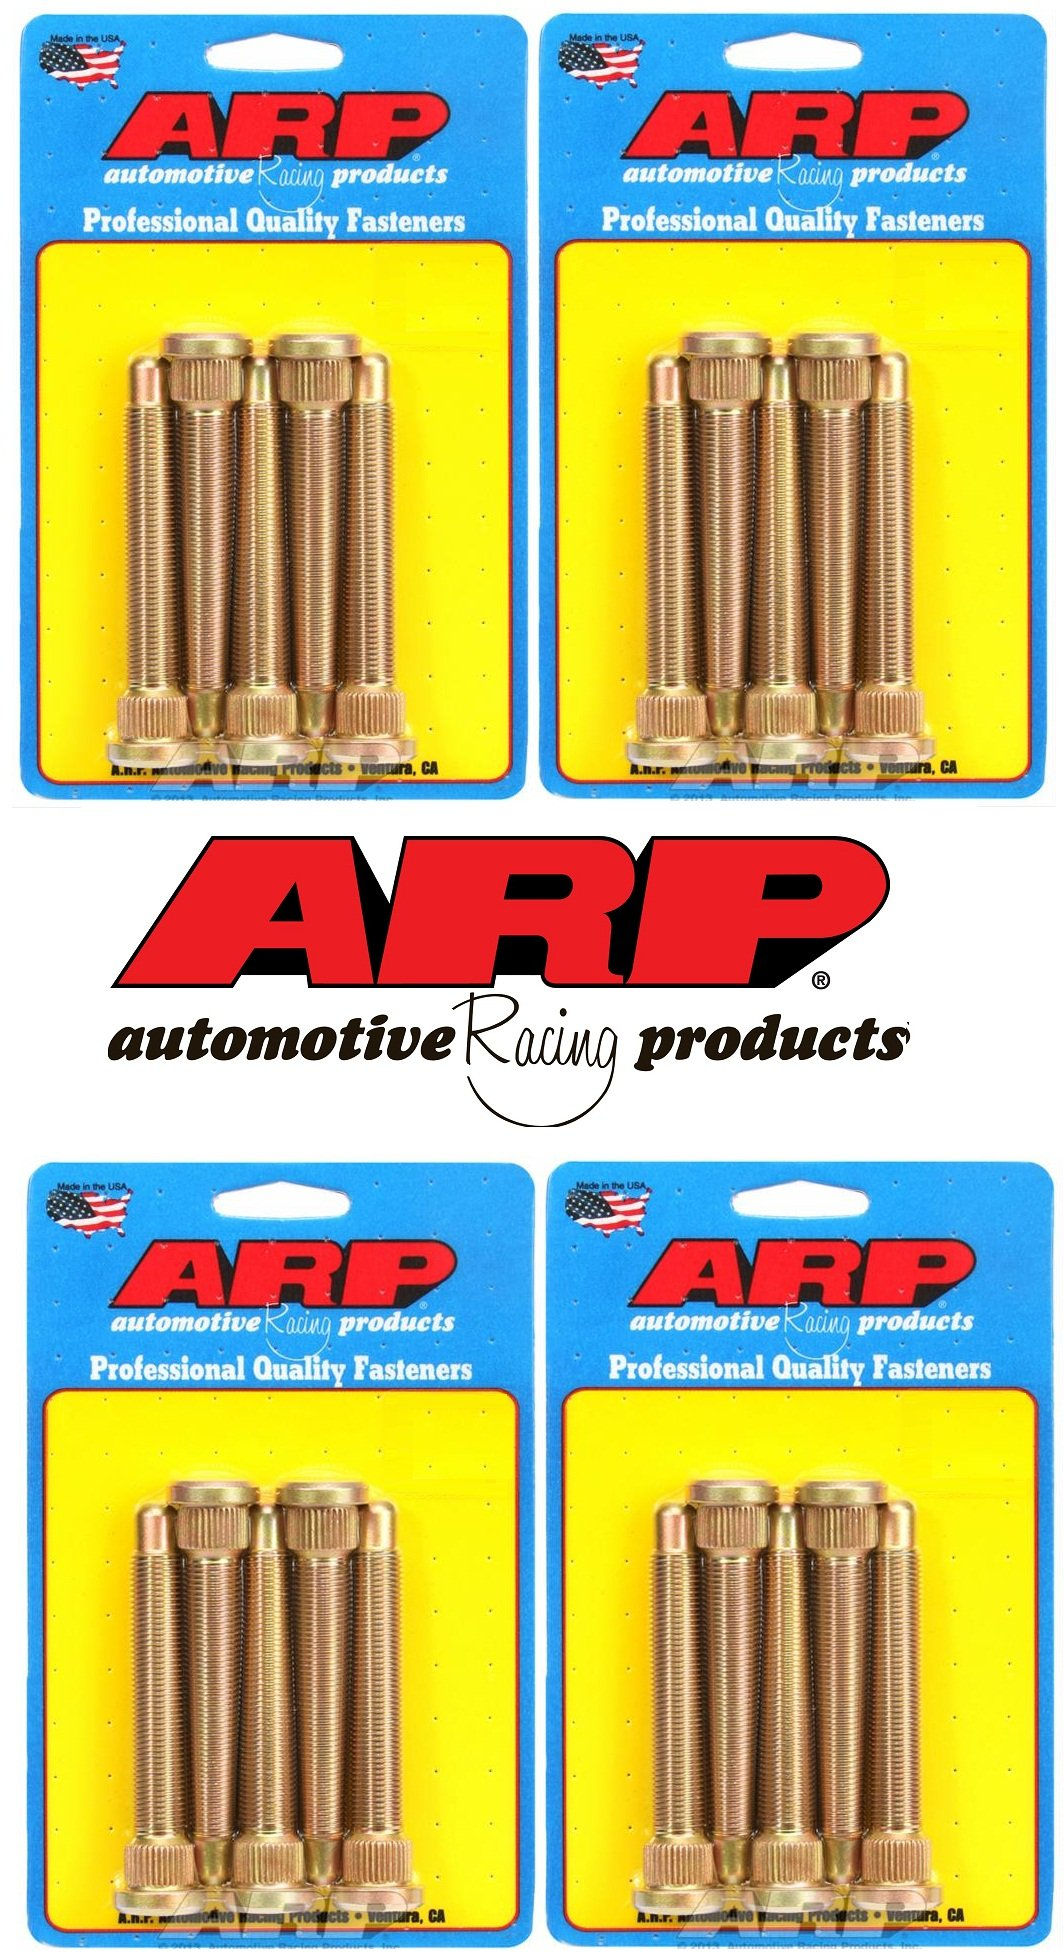 ARP Wheel Stud Kit For Ford Rear Disc Brakes (Set of 20) by ARP (Image #1)